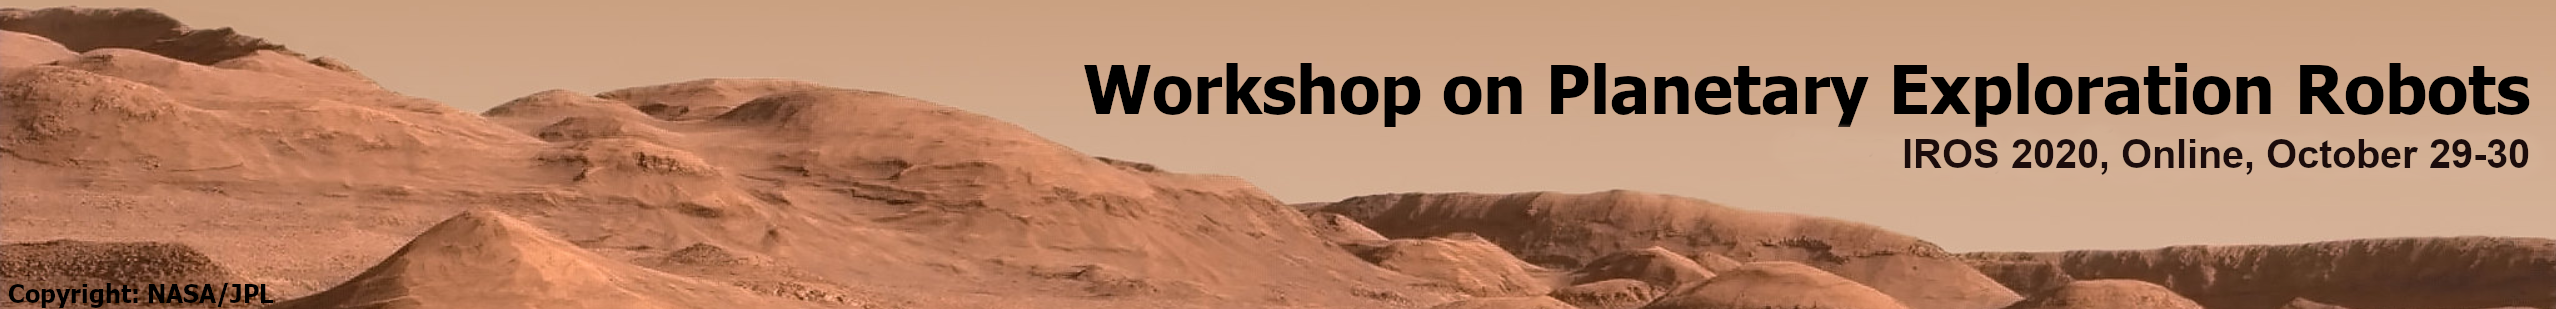 Workshop on Planetary Exploration Robots